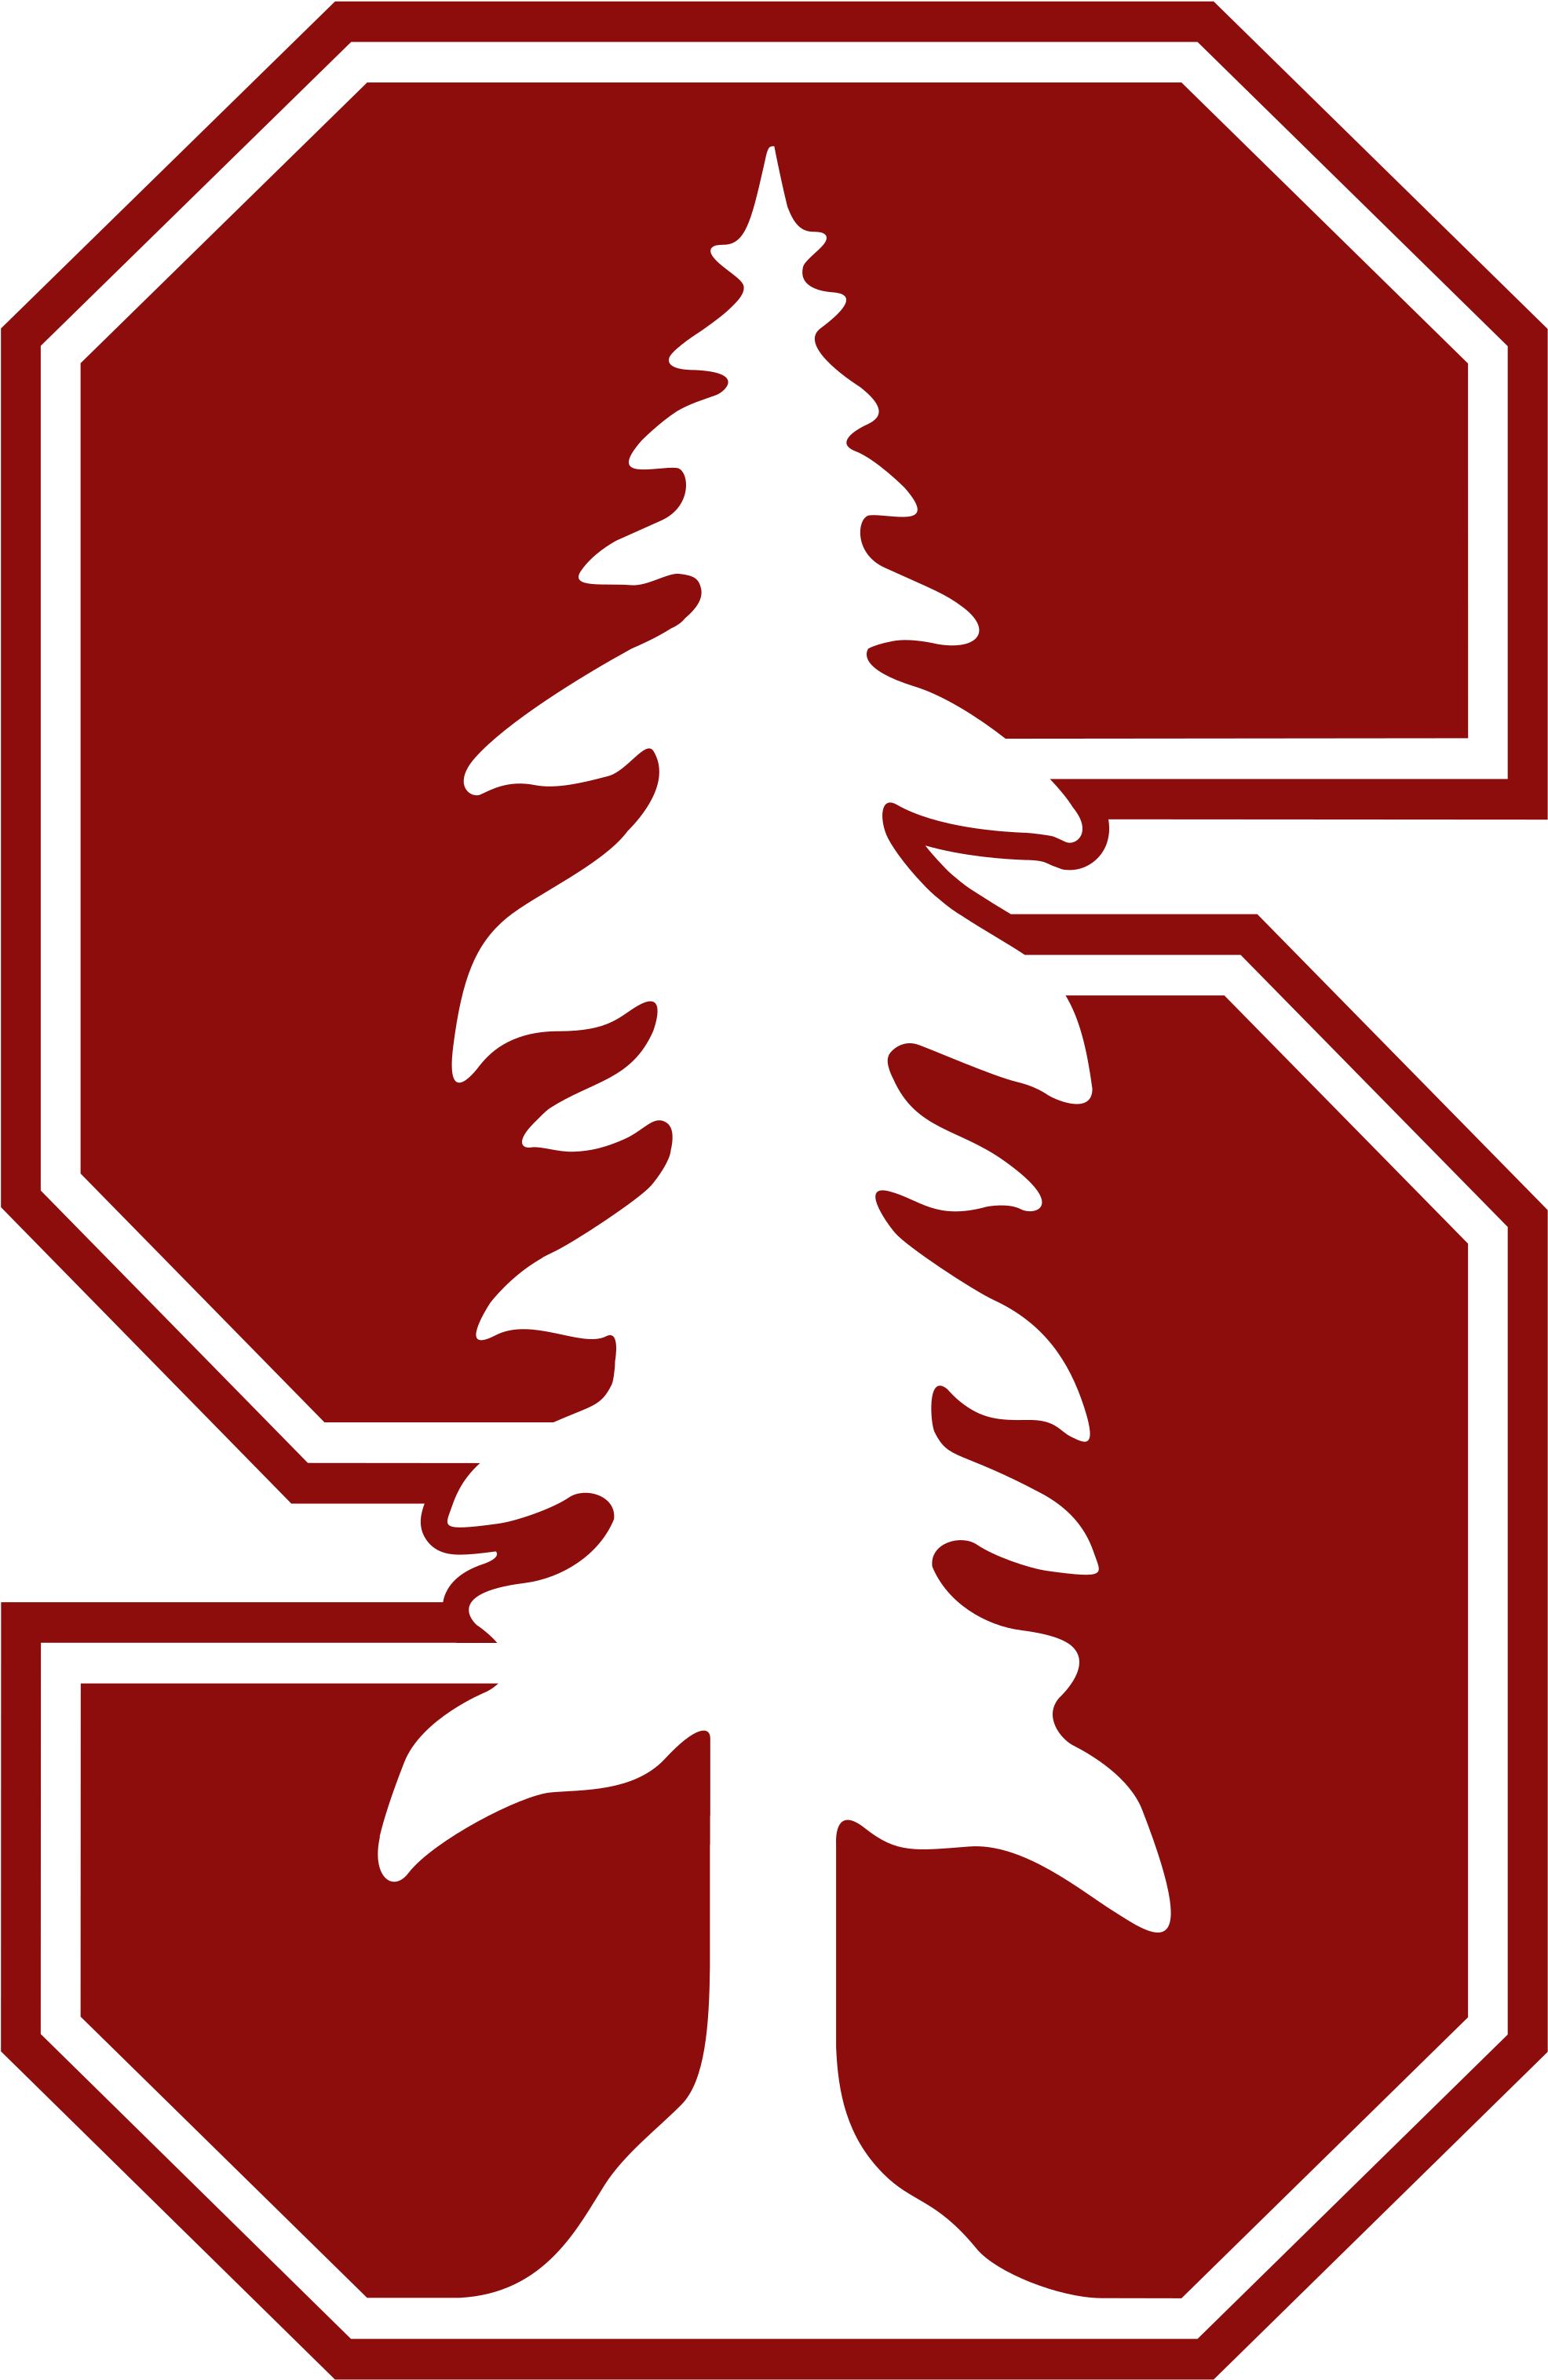 Tba clipart clip freeuse 10/06 @ Stanford Time Tba - Stanford Logo Png Clipart - Full ... clip freeuse